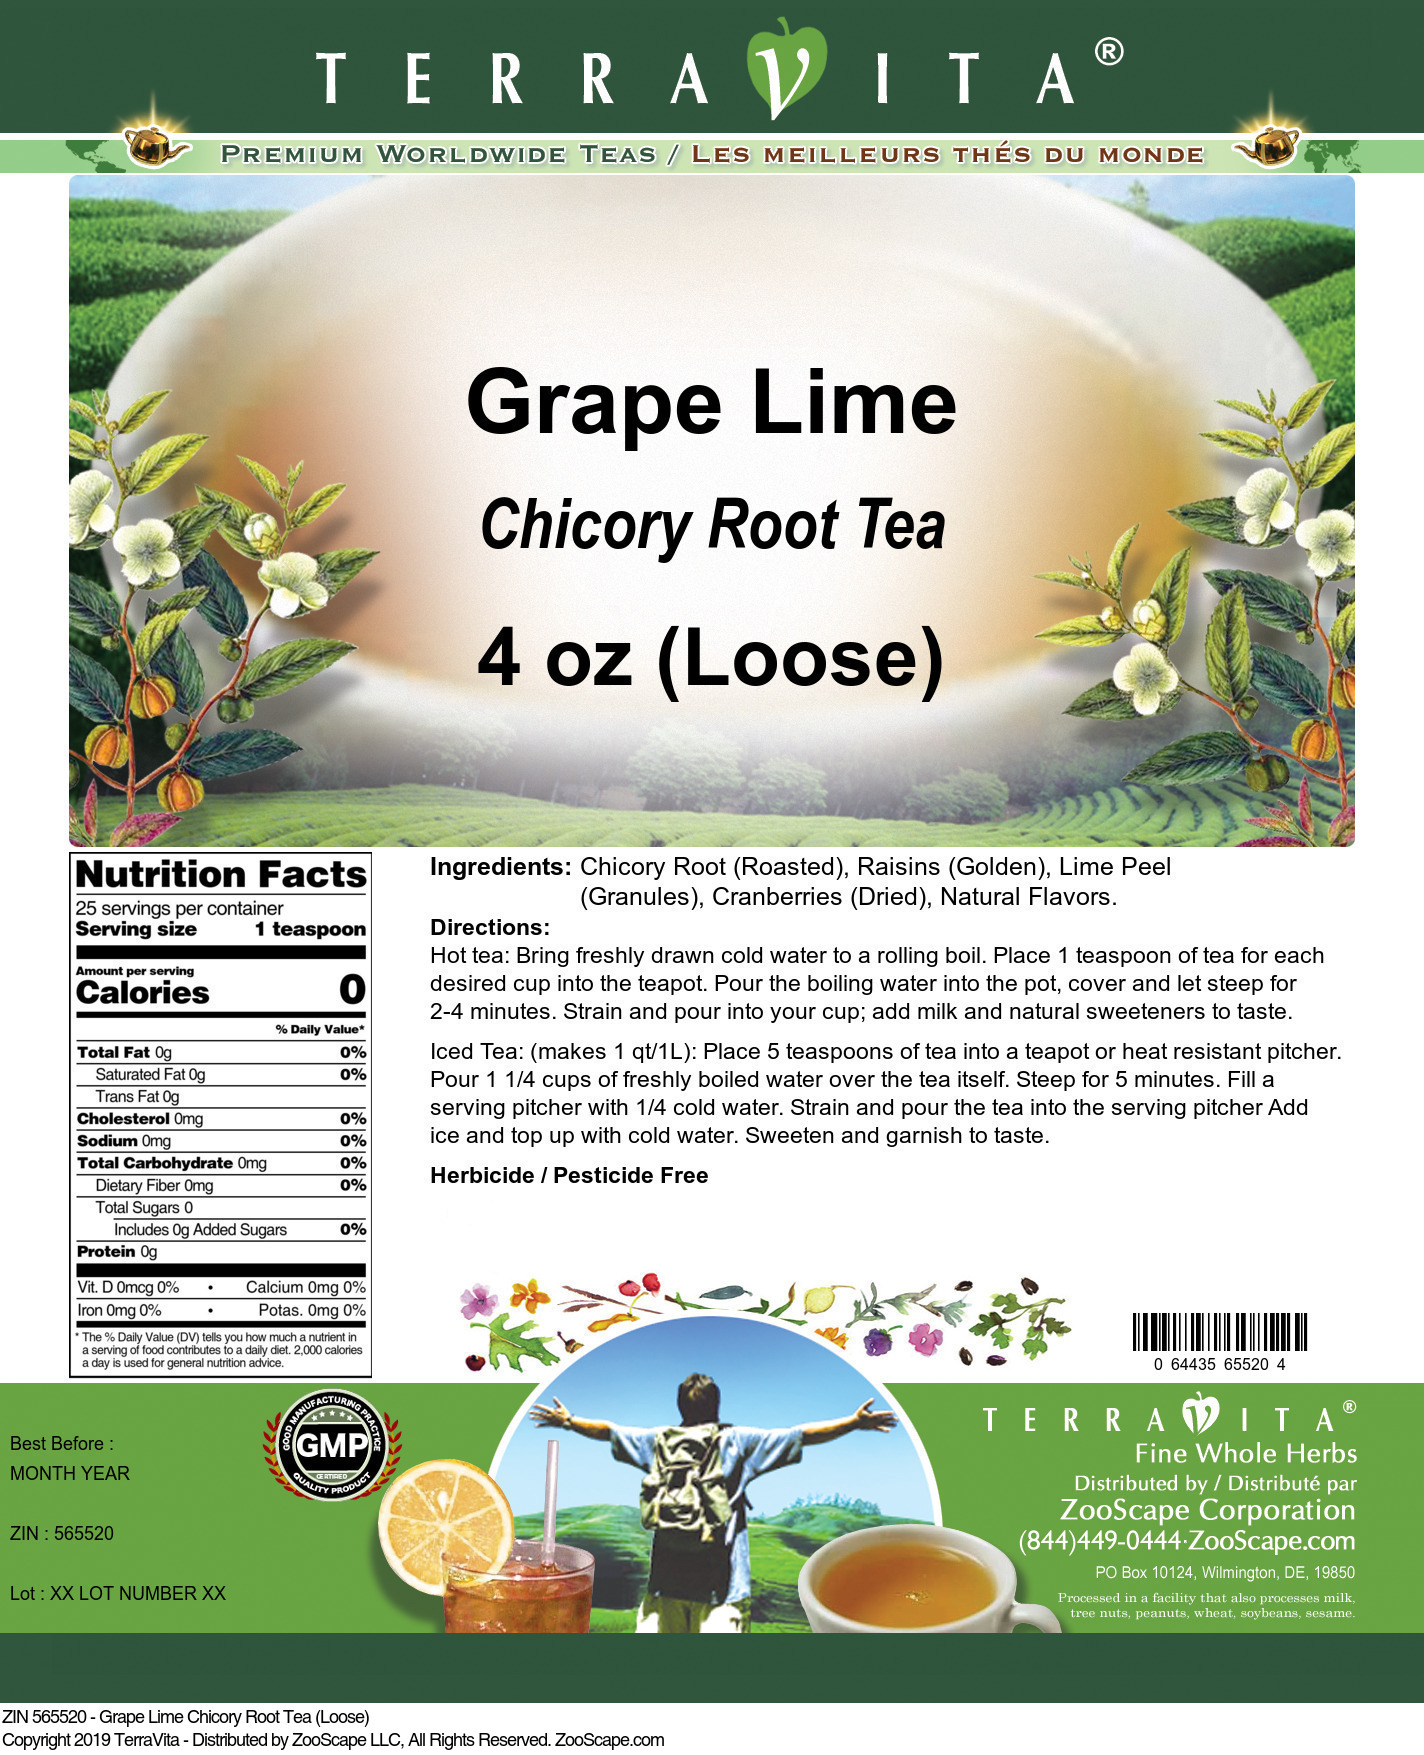 Grape Lime Chicory Root